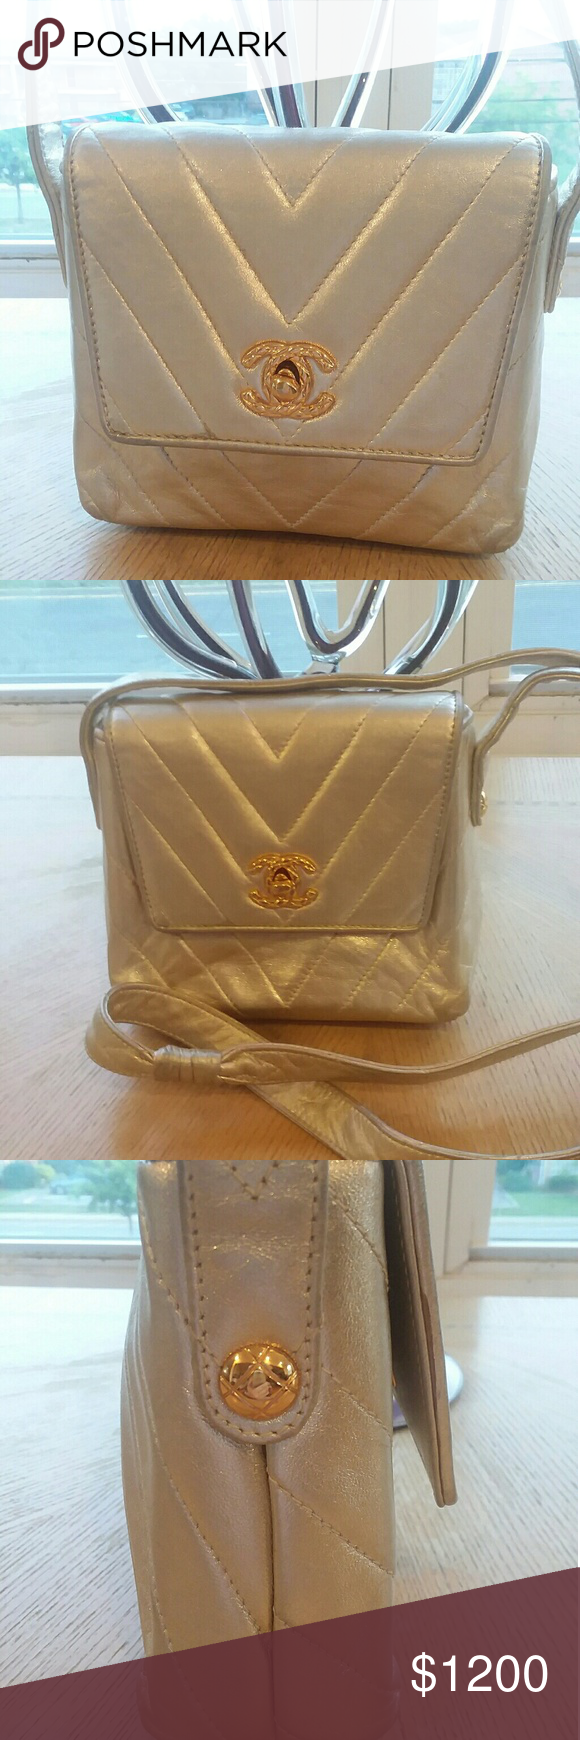 Classic Chanel Quilted Leather Handbag For your